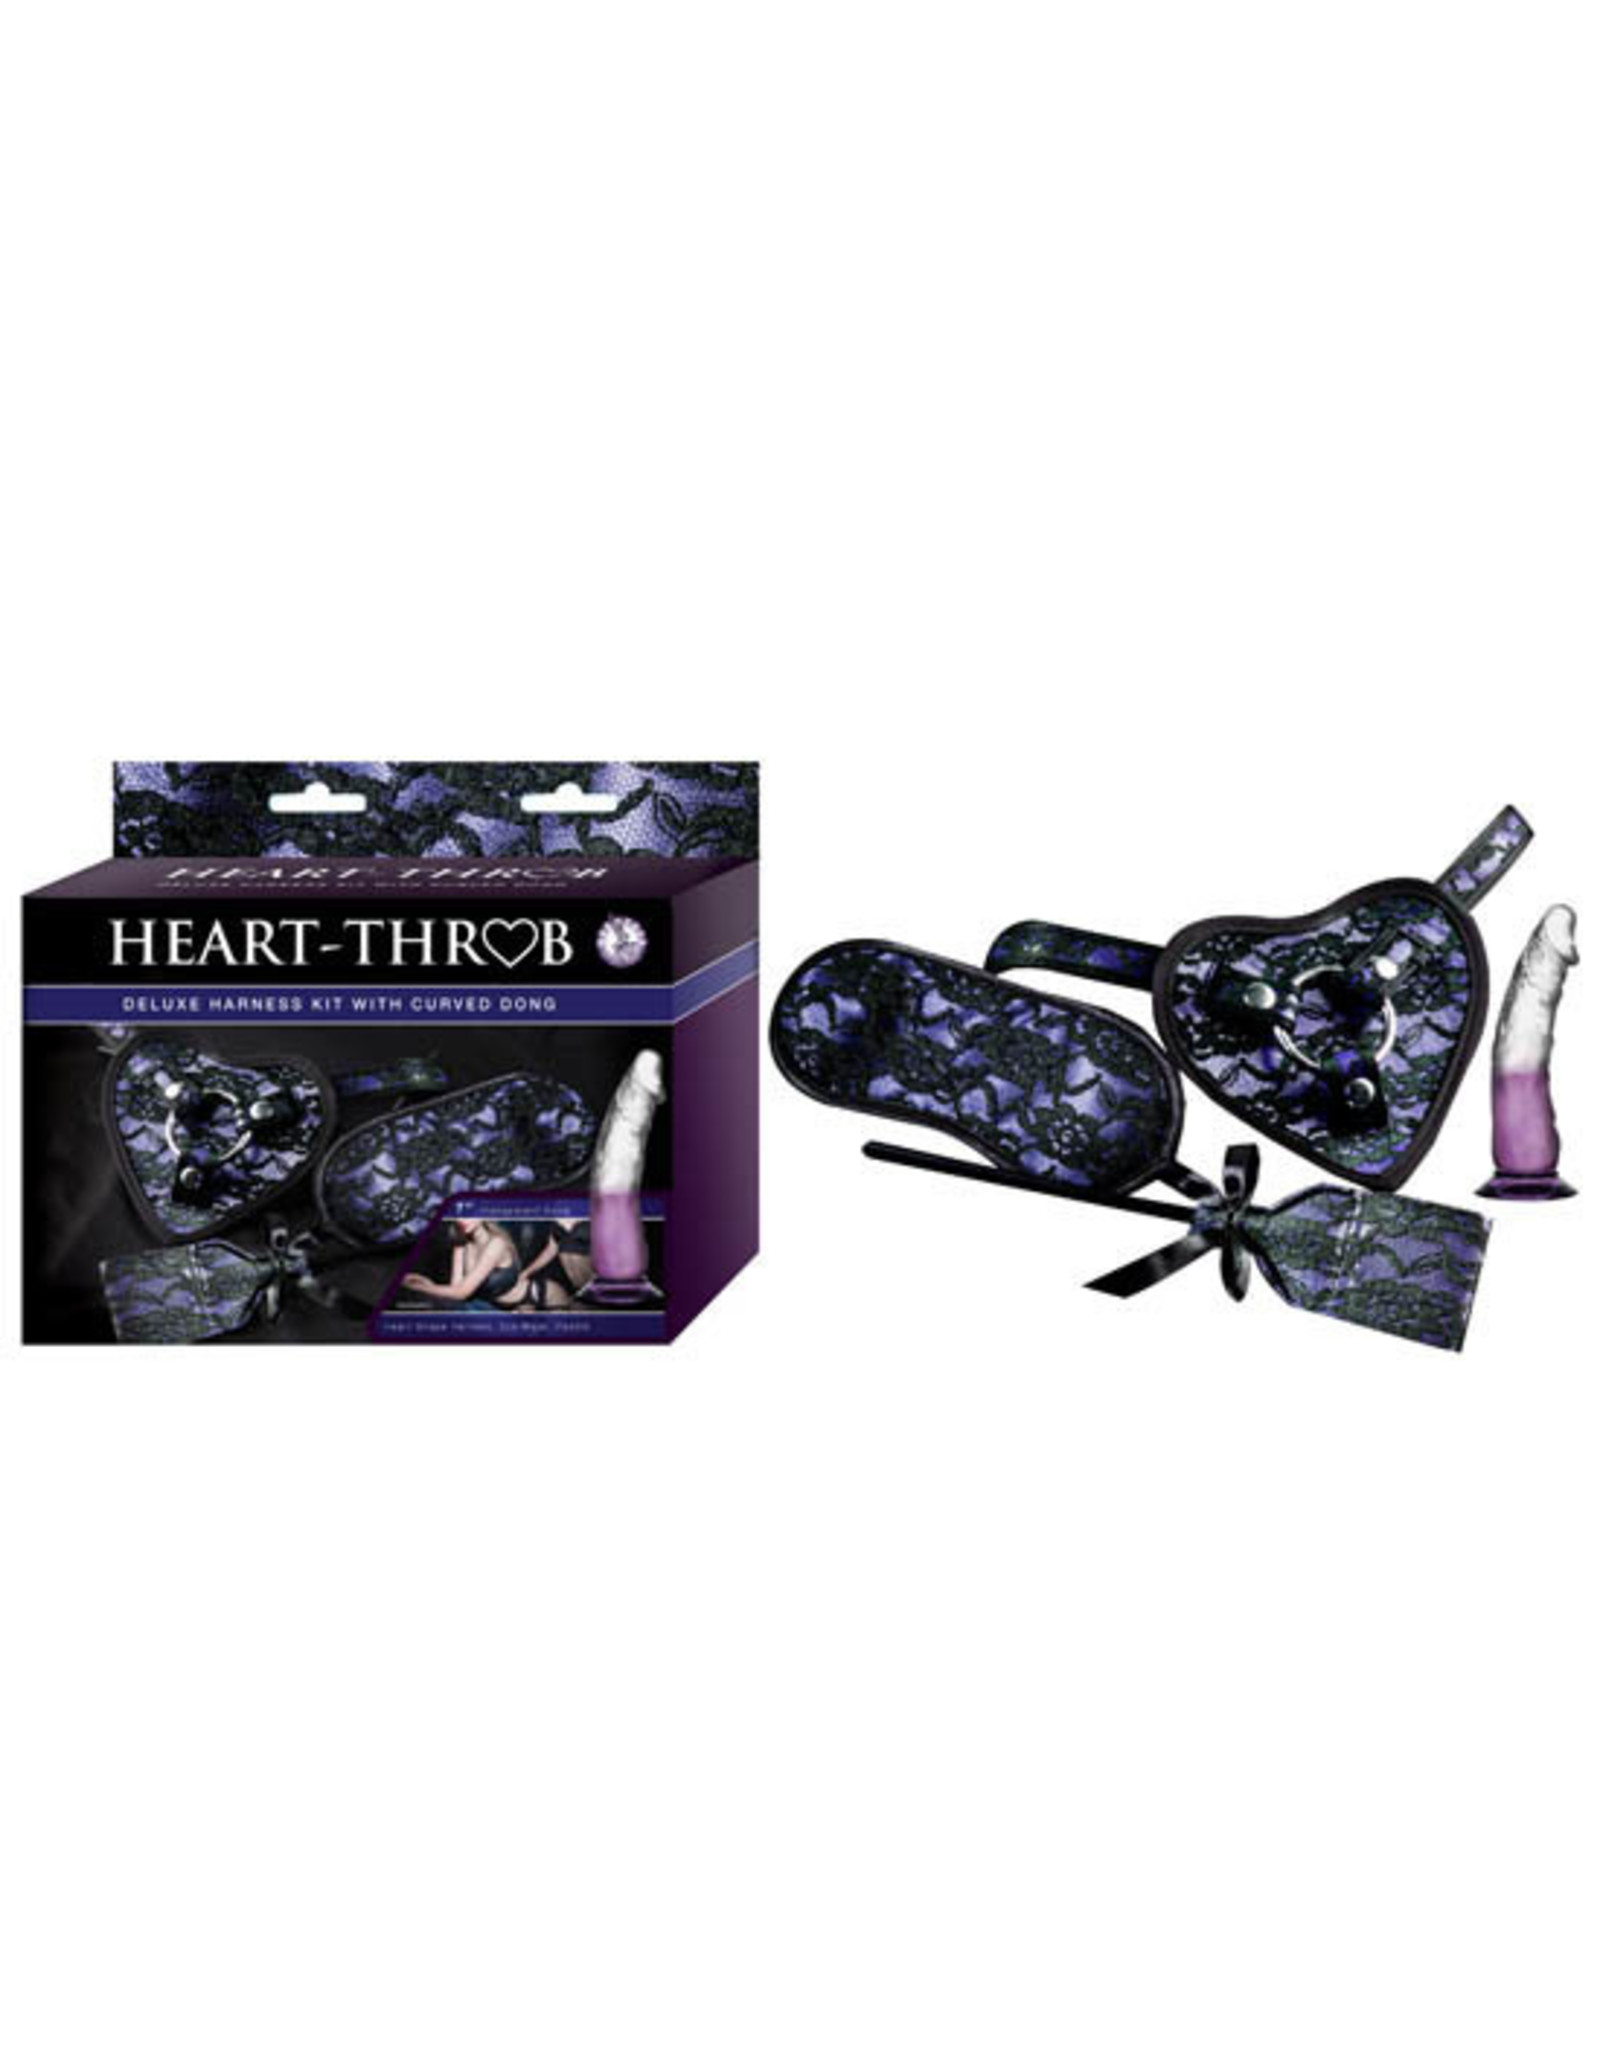 Heart Throb Deluxe Harness Kit with Curved Dong (Mask & Paddle) Purple